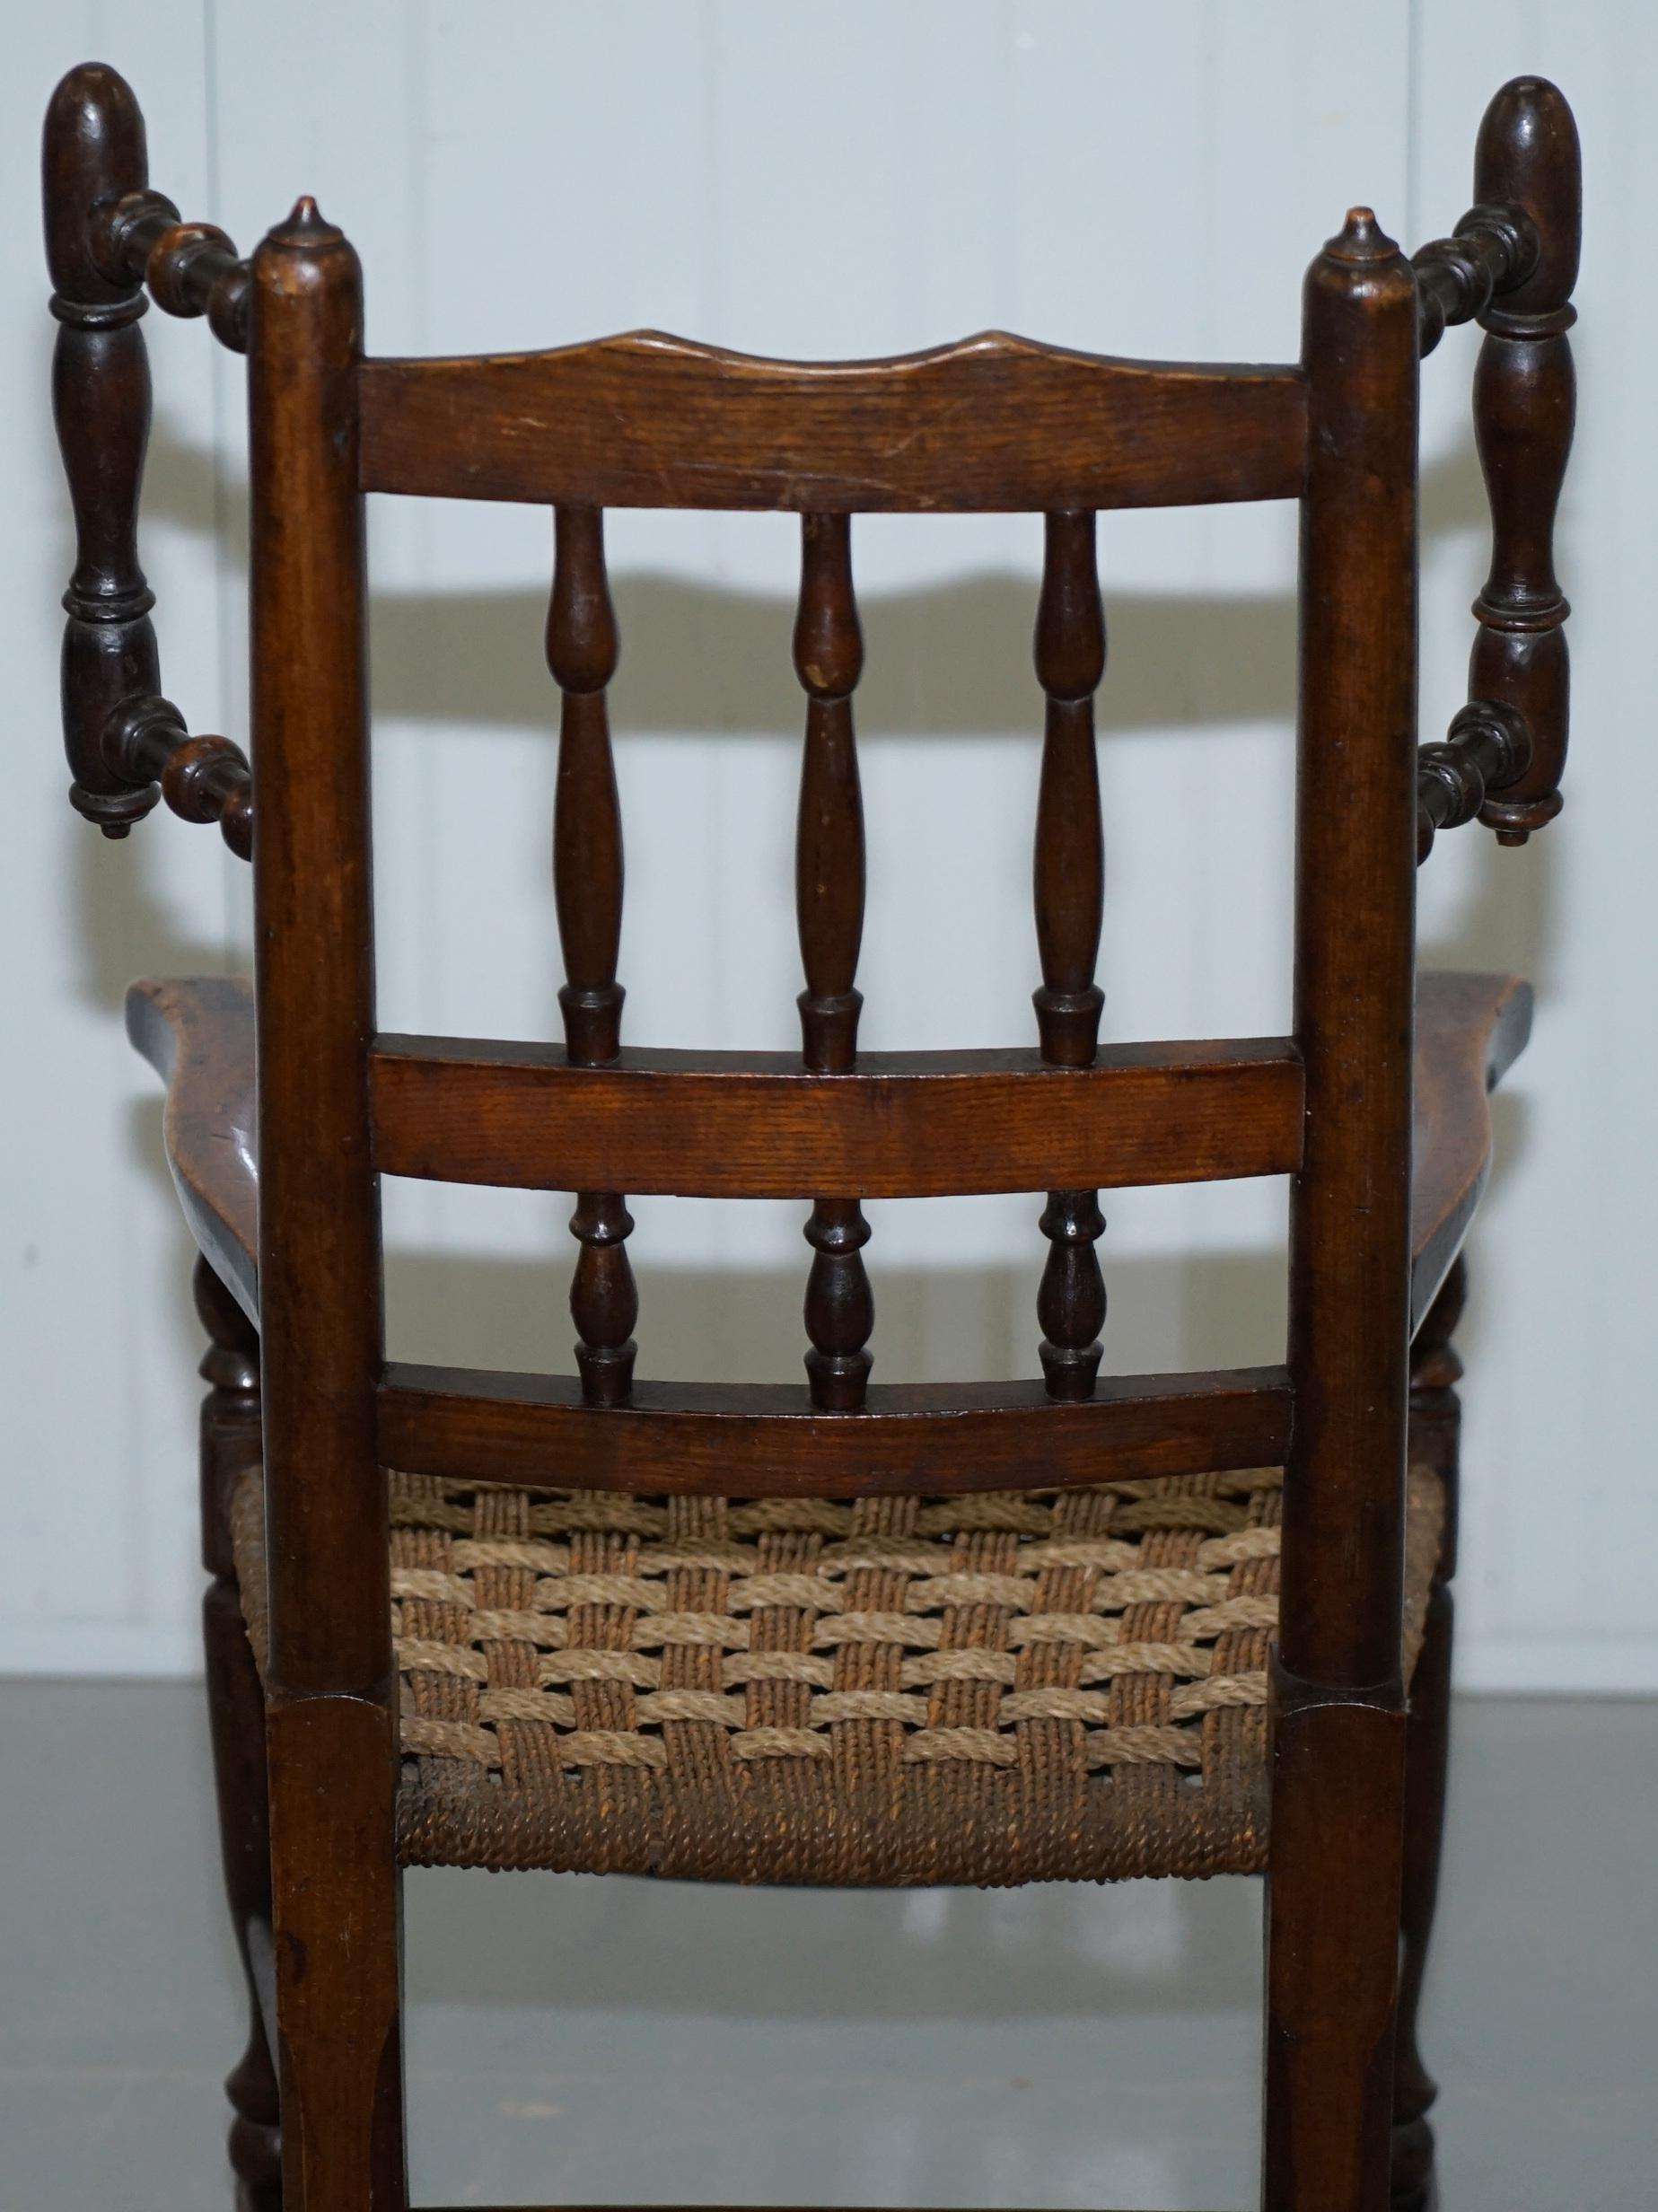 Admirable Rare Childrens Small Antique Rope Seat Georgian Rocking Chair Solid Elm Display Machost Co Dining Chair Design Ideas Machostcouk